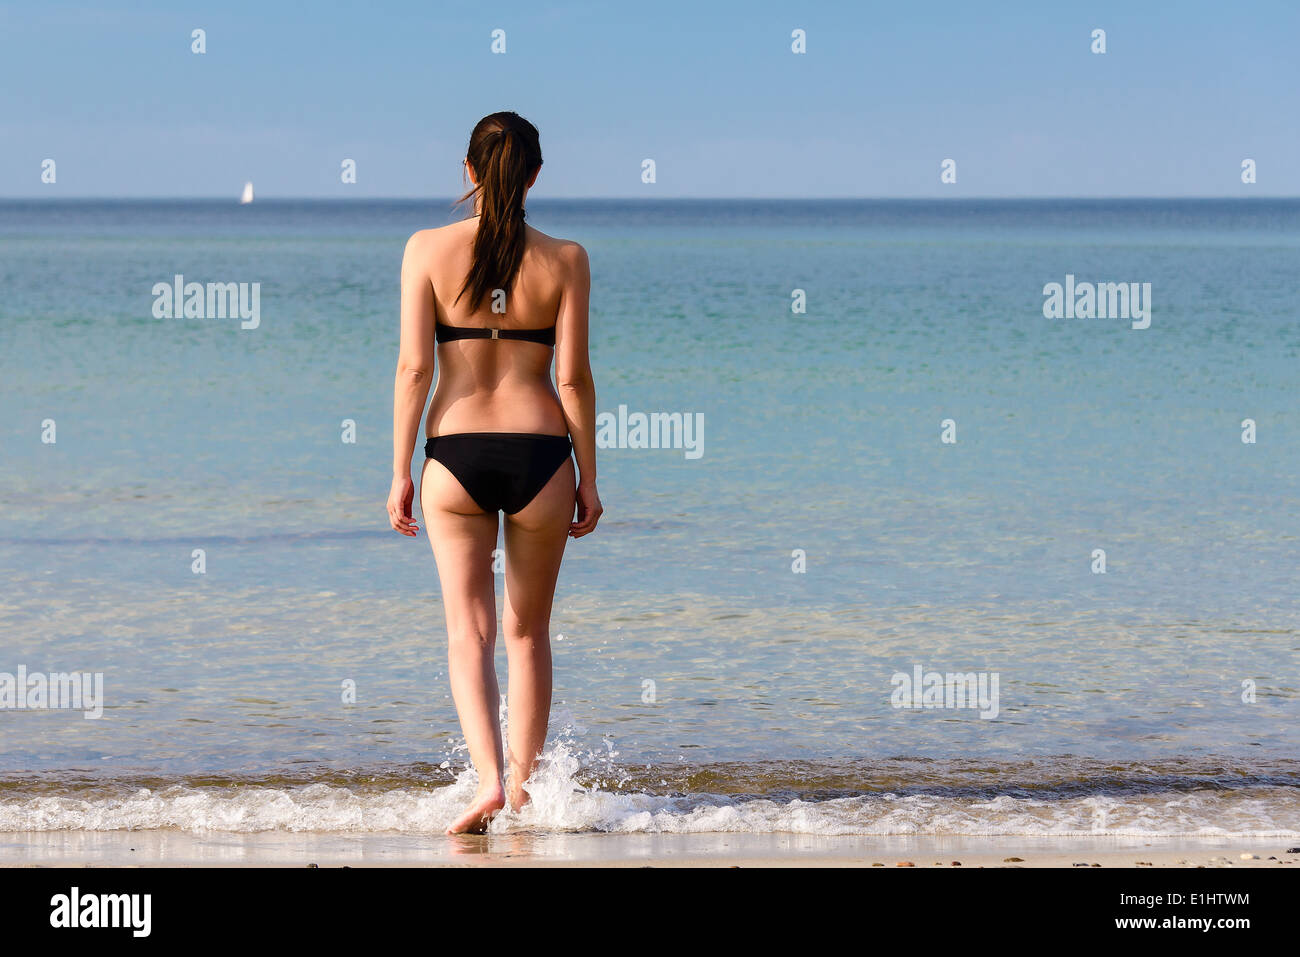 Young woman with a lovely figure entering the sea - Stock Image